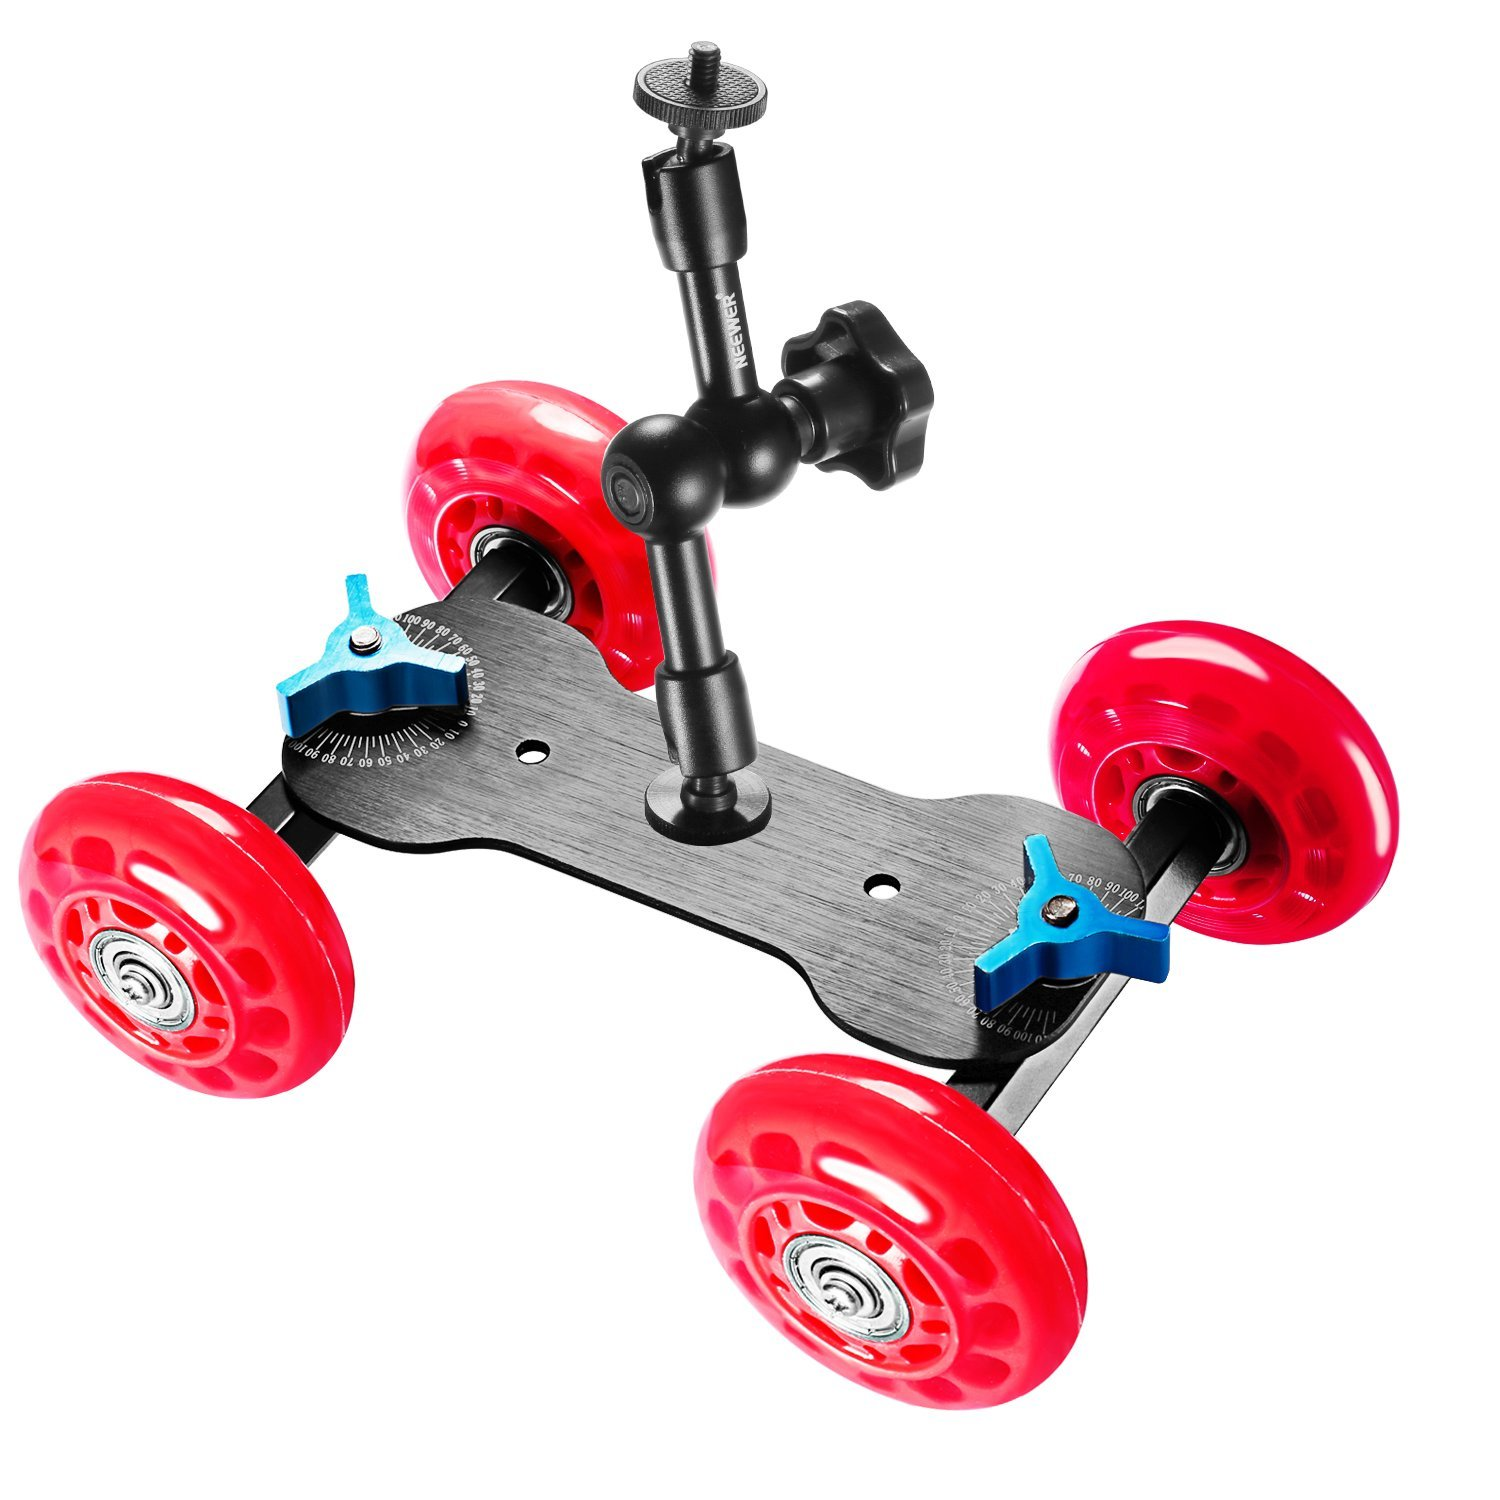 Neewer Table Mobile Rolling Slider Dolly (Red) and 7 inches Adjustable Articulating Magic Arm, Car Skater Video Track Rail Stabilizer with Load Capacity 10 kilograms/22 pounds for DSLRs Flash Lights